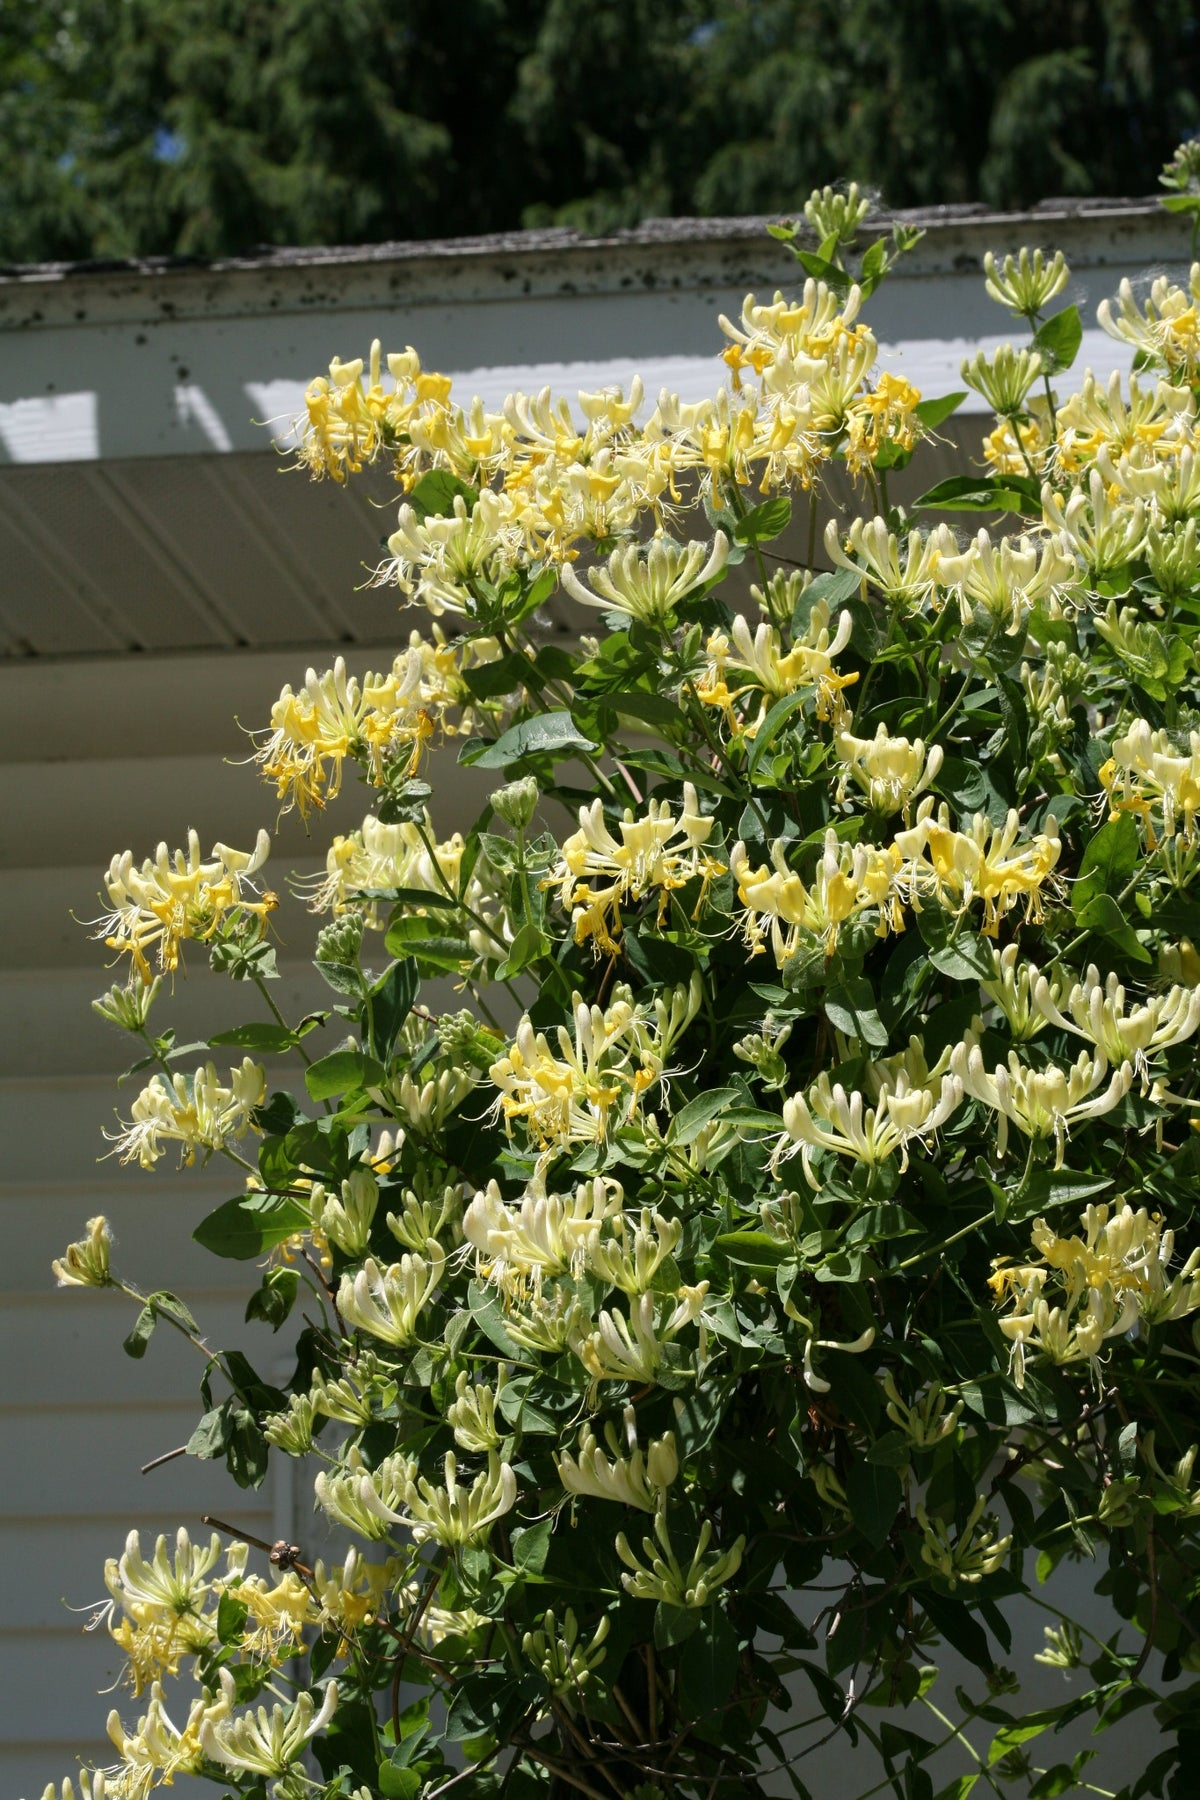 Proven Winners® Shrub Plants|Lonicera - Scentsation' Honeysuckle 2